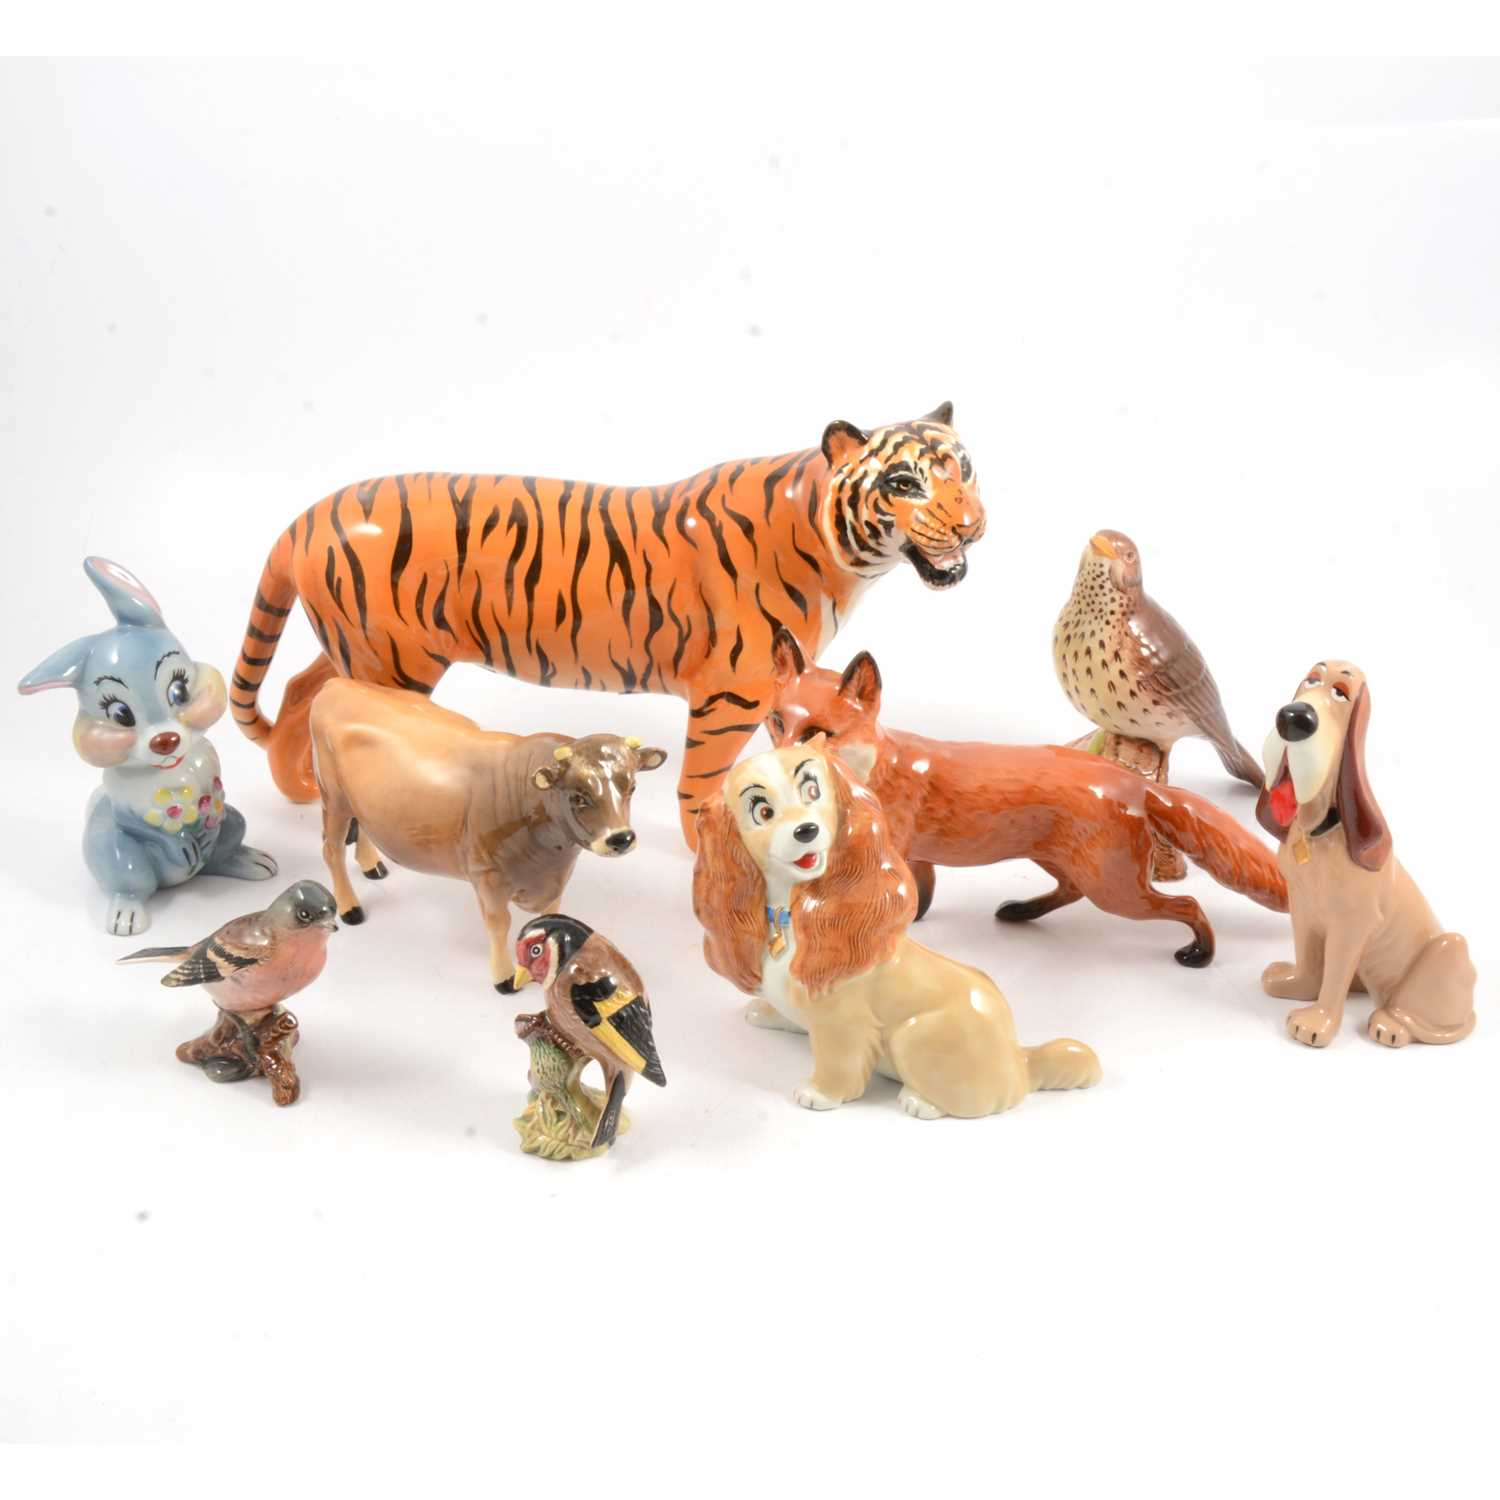 Lot 23 - Beswick tiger and other animals and birds, and Wade Disney blow-ups.